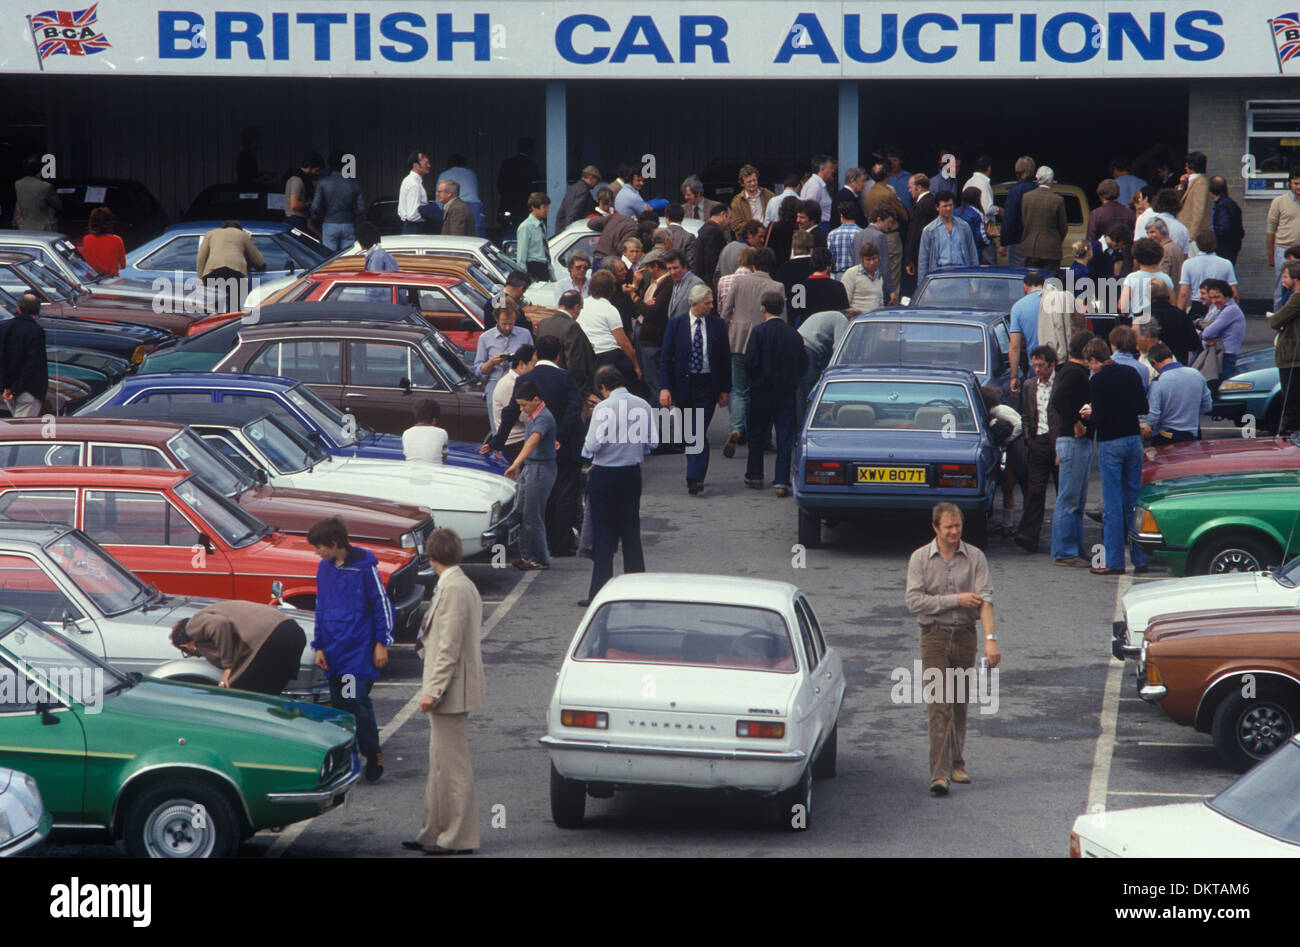 British Car Auction High Resolution Stock Photography And Images Alamy